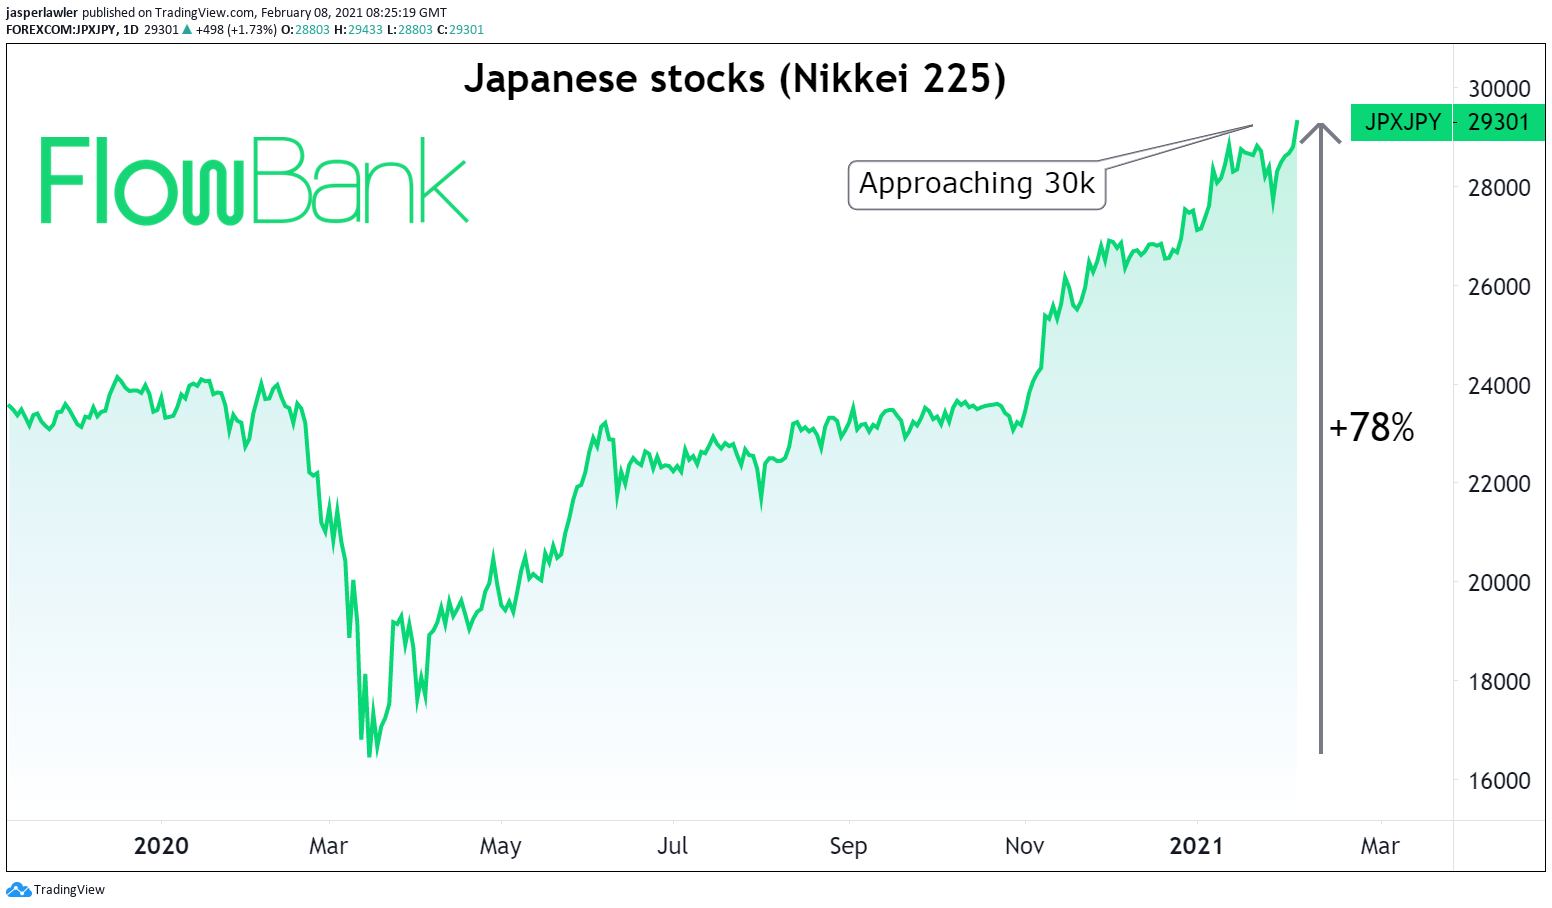 Boom for Japanese stocks continues with another 2% gain in the index on Monday. It is up 78% from the March lows